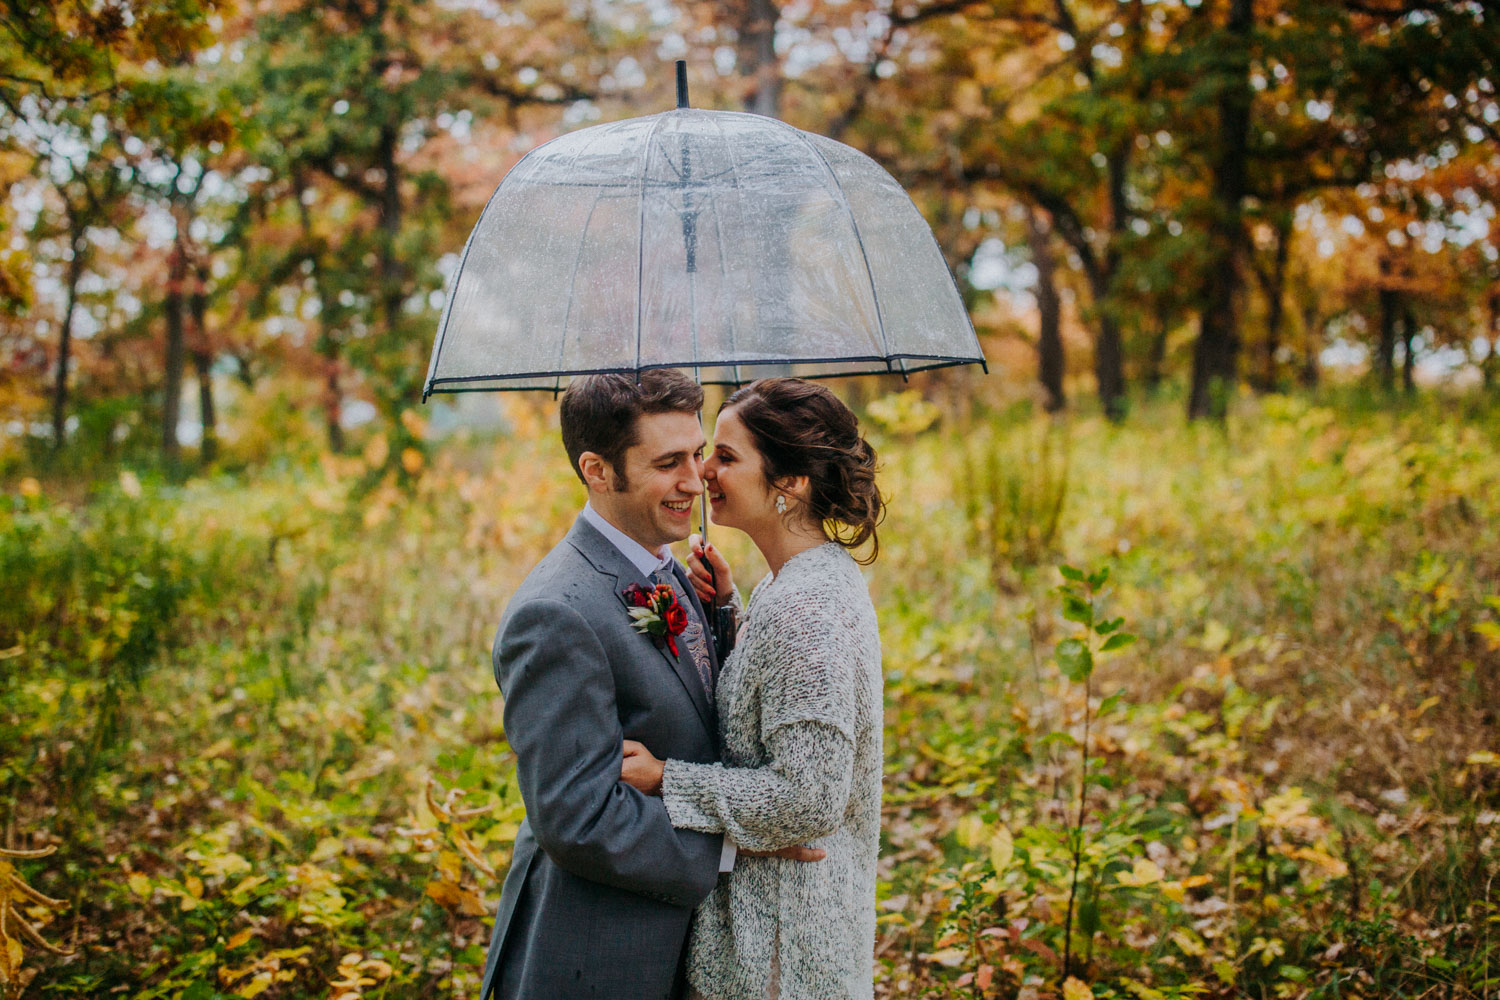 Cassi and Andrew_s Autumn Wedding in the Rain for SEO (12 of 14).jpg